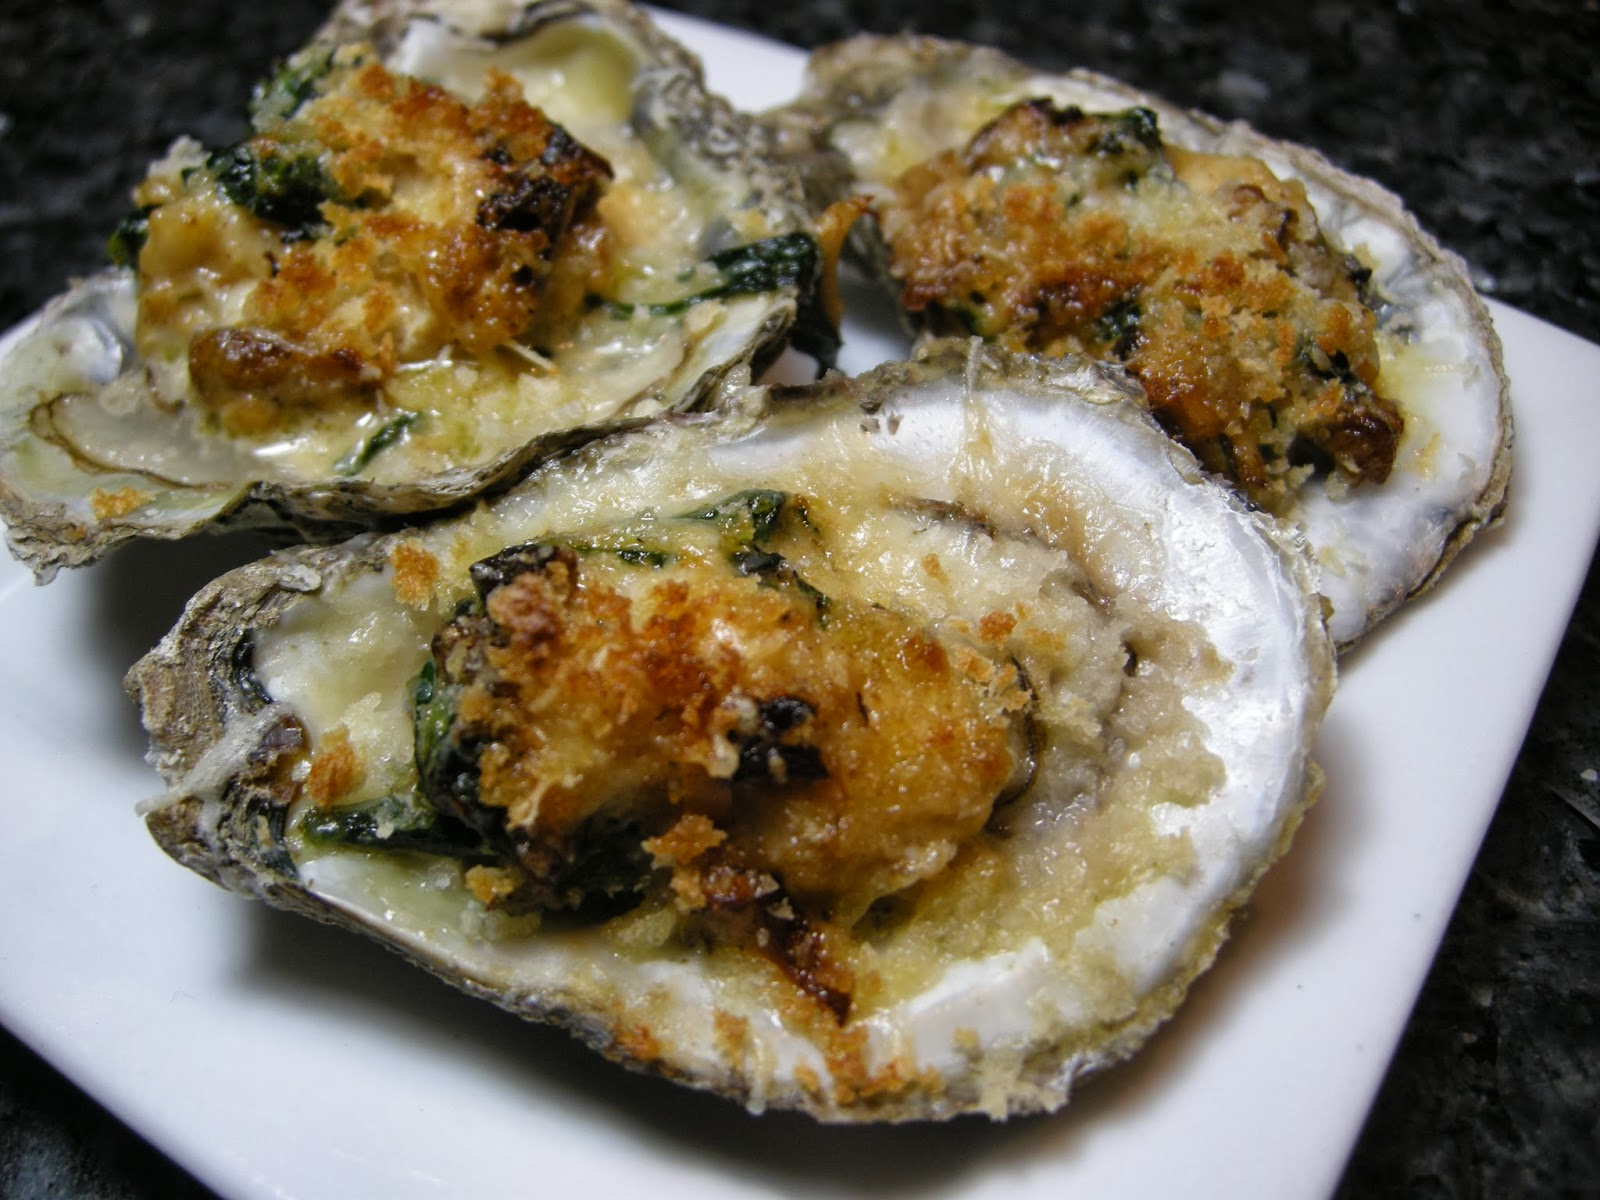 Kitchens Are Monkey Business: Oysters On The Half Shell!